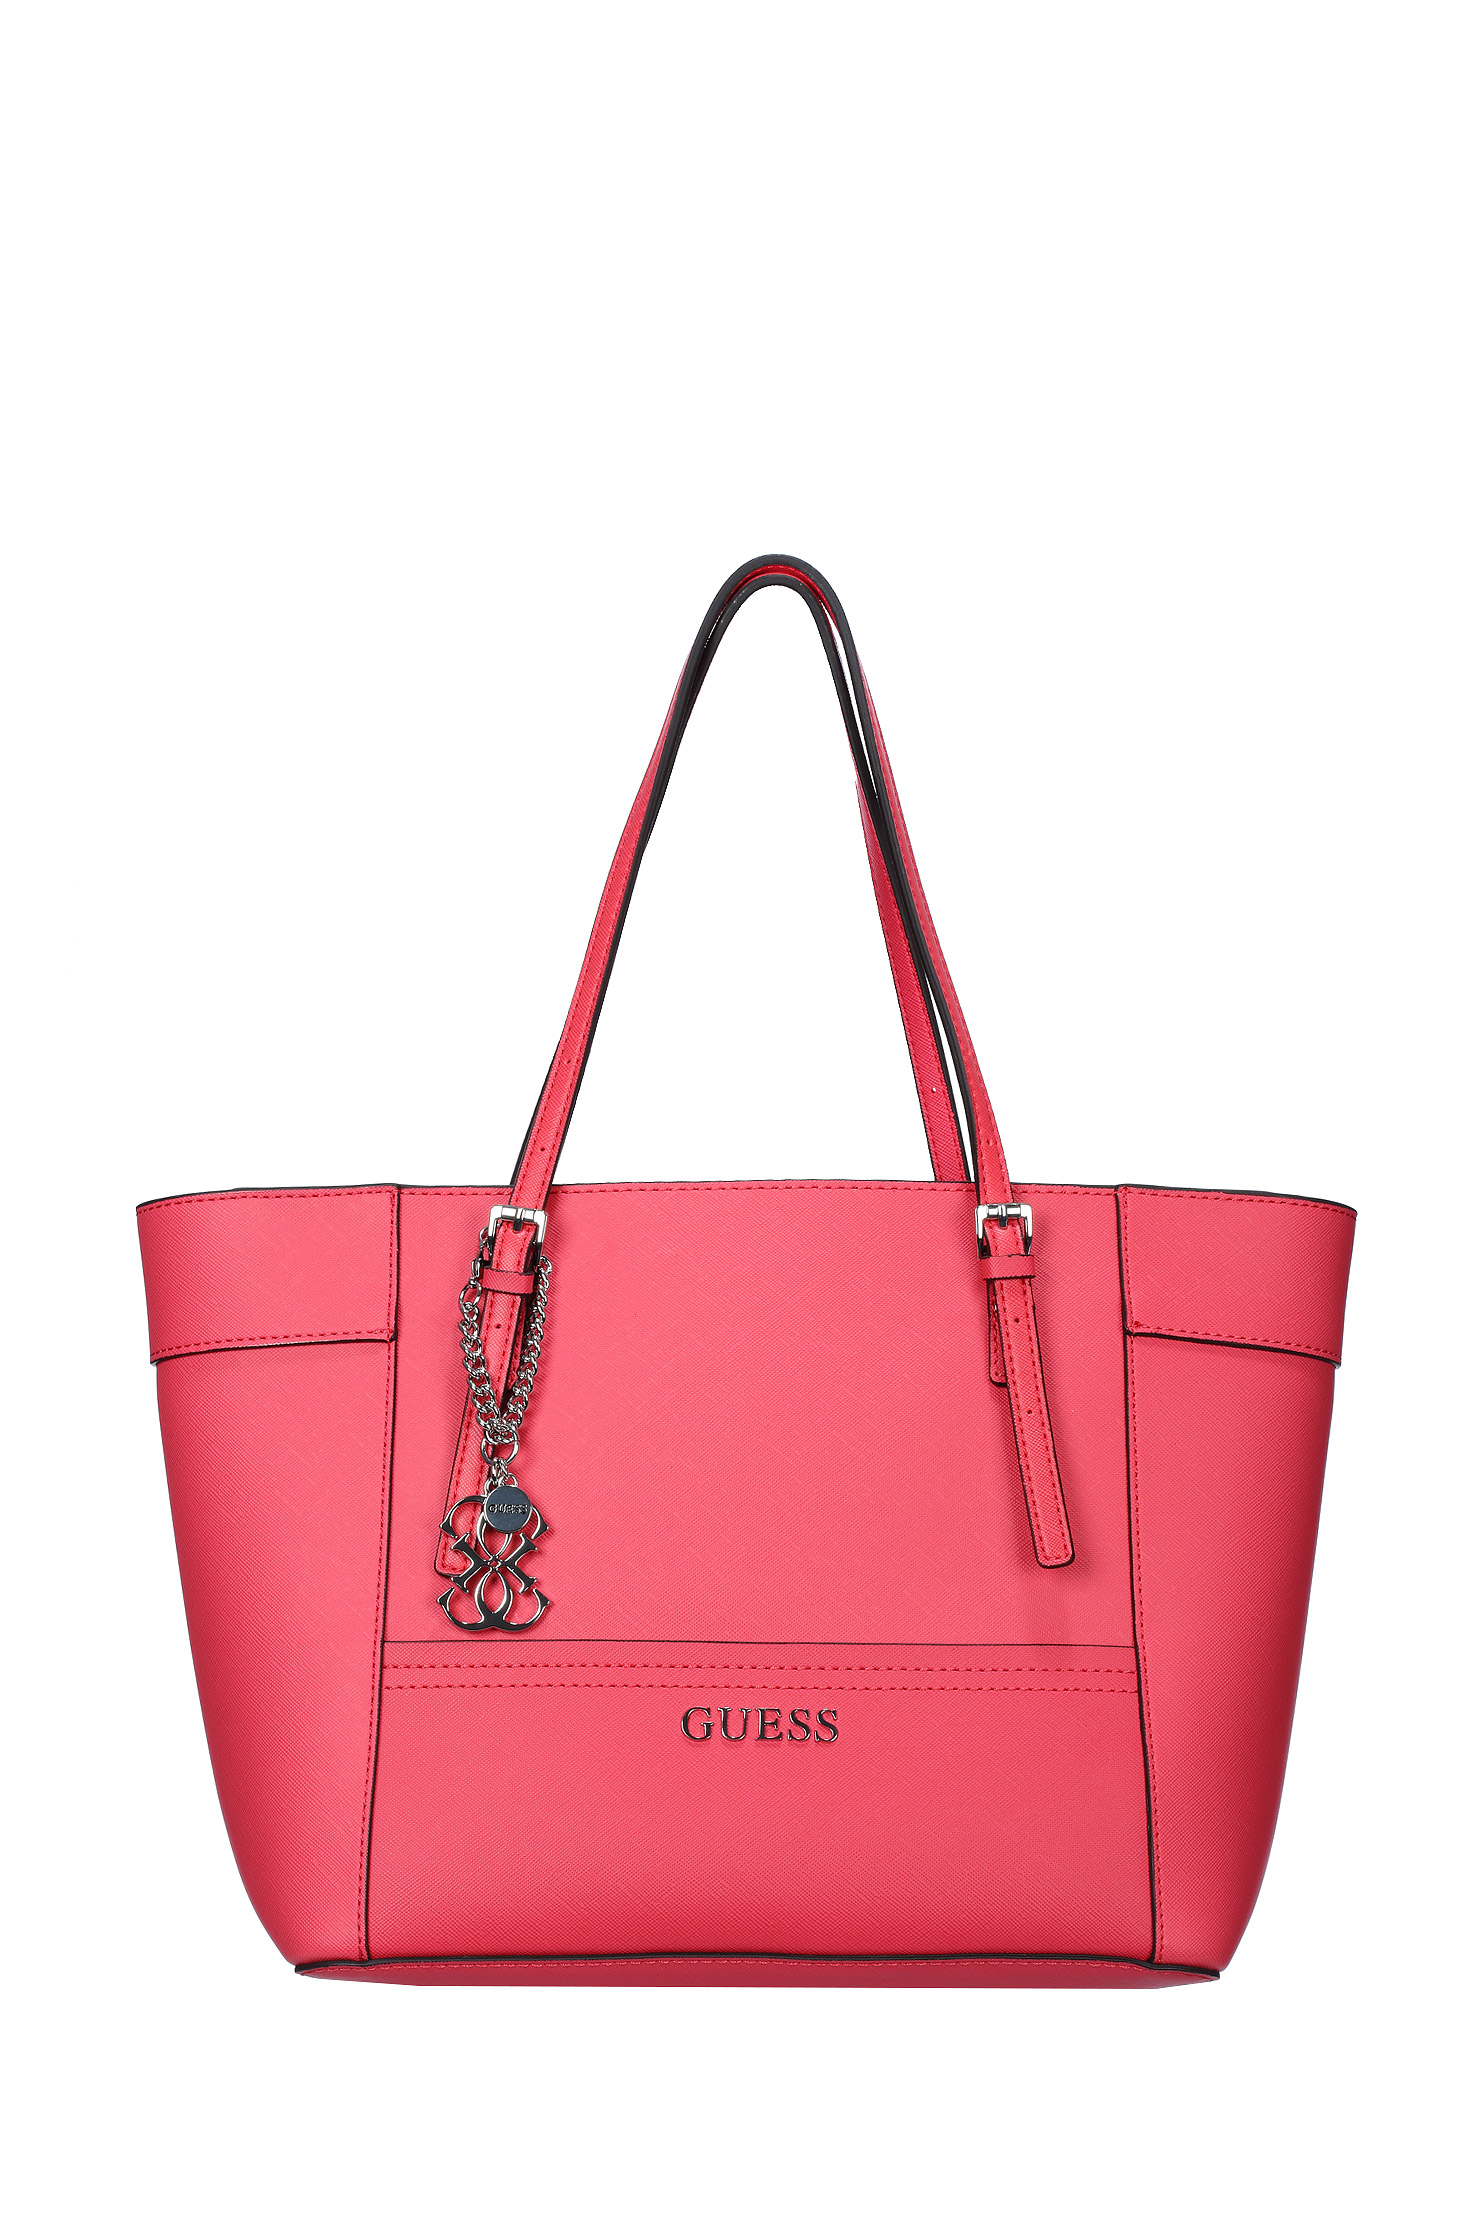 Guess Town Bag Hwvy45 in Pink | Lyst